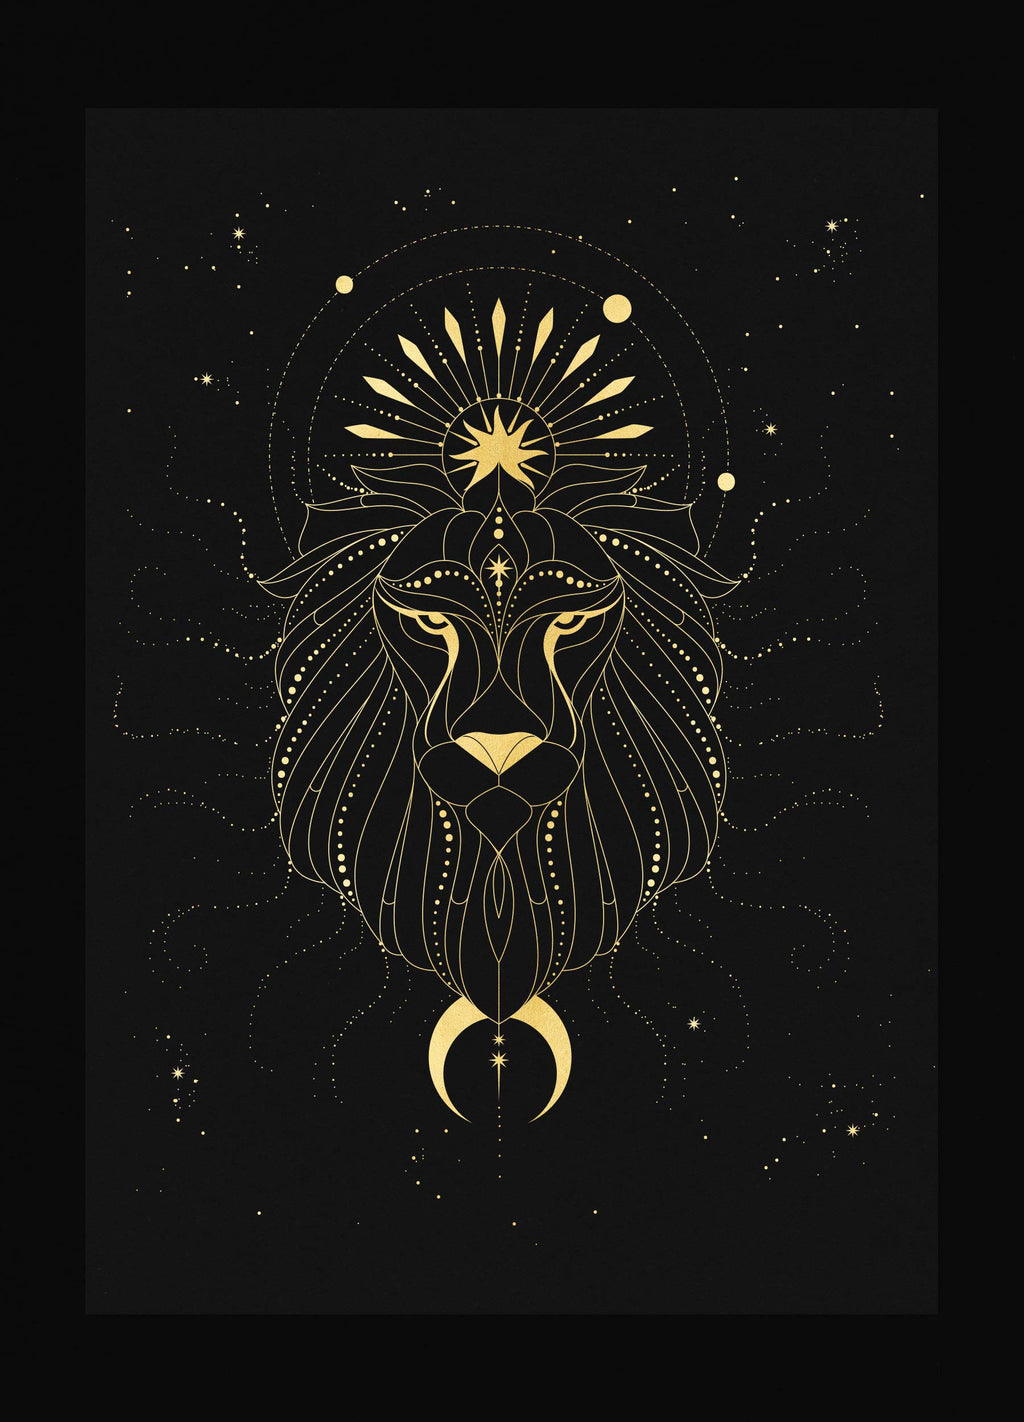 Leo Figure Constellation Gold foil on black paper art print by Cocorrina & Design studio and shop